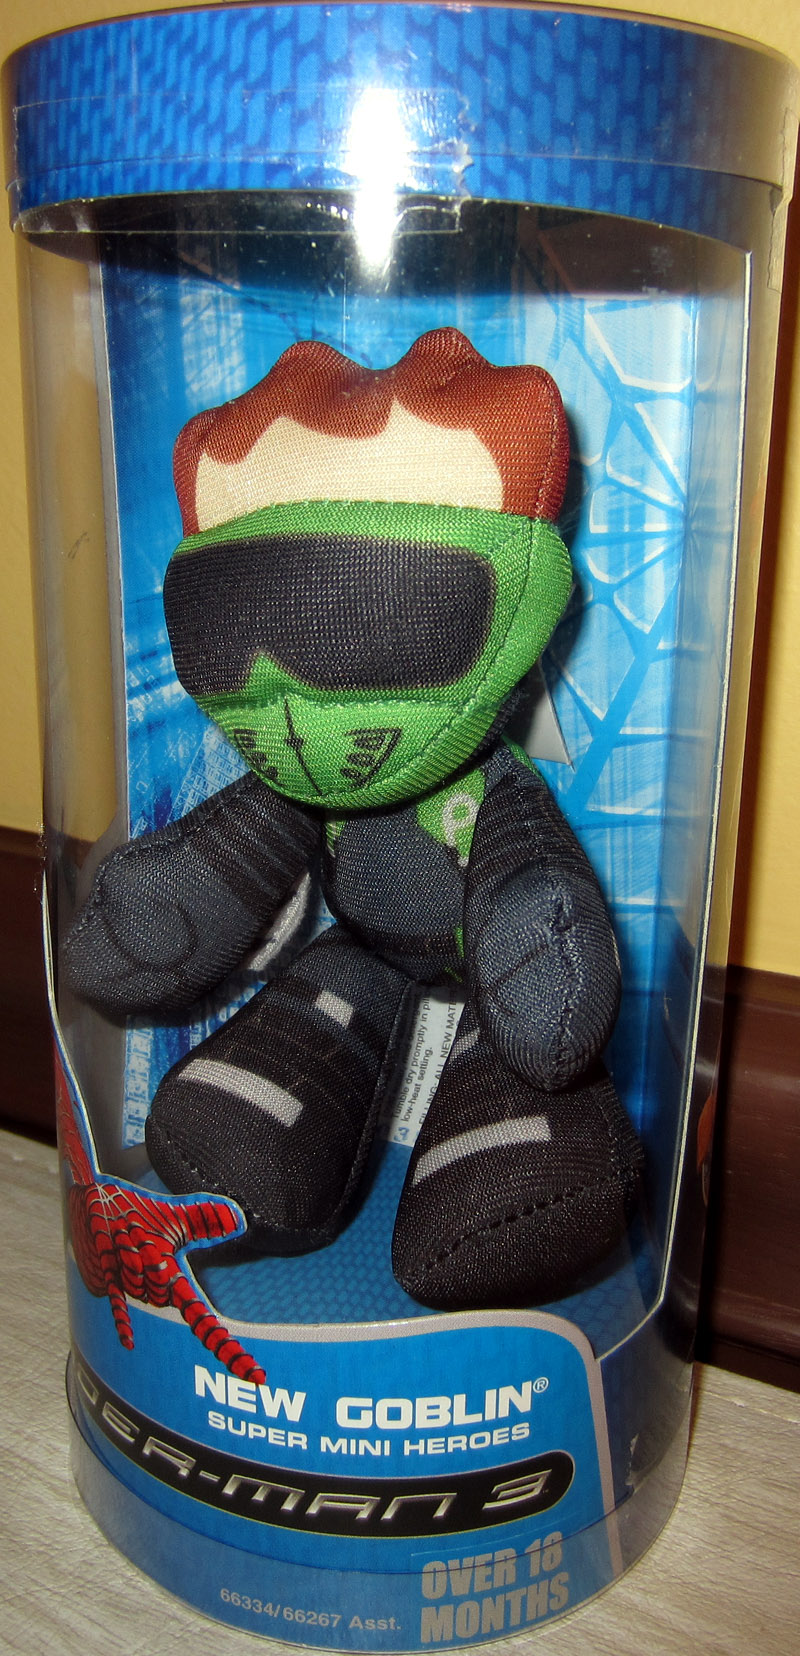 New Goblin Super Mini Heroes Plush (Spider-Man 3)